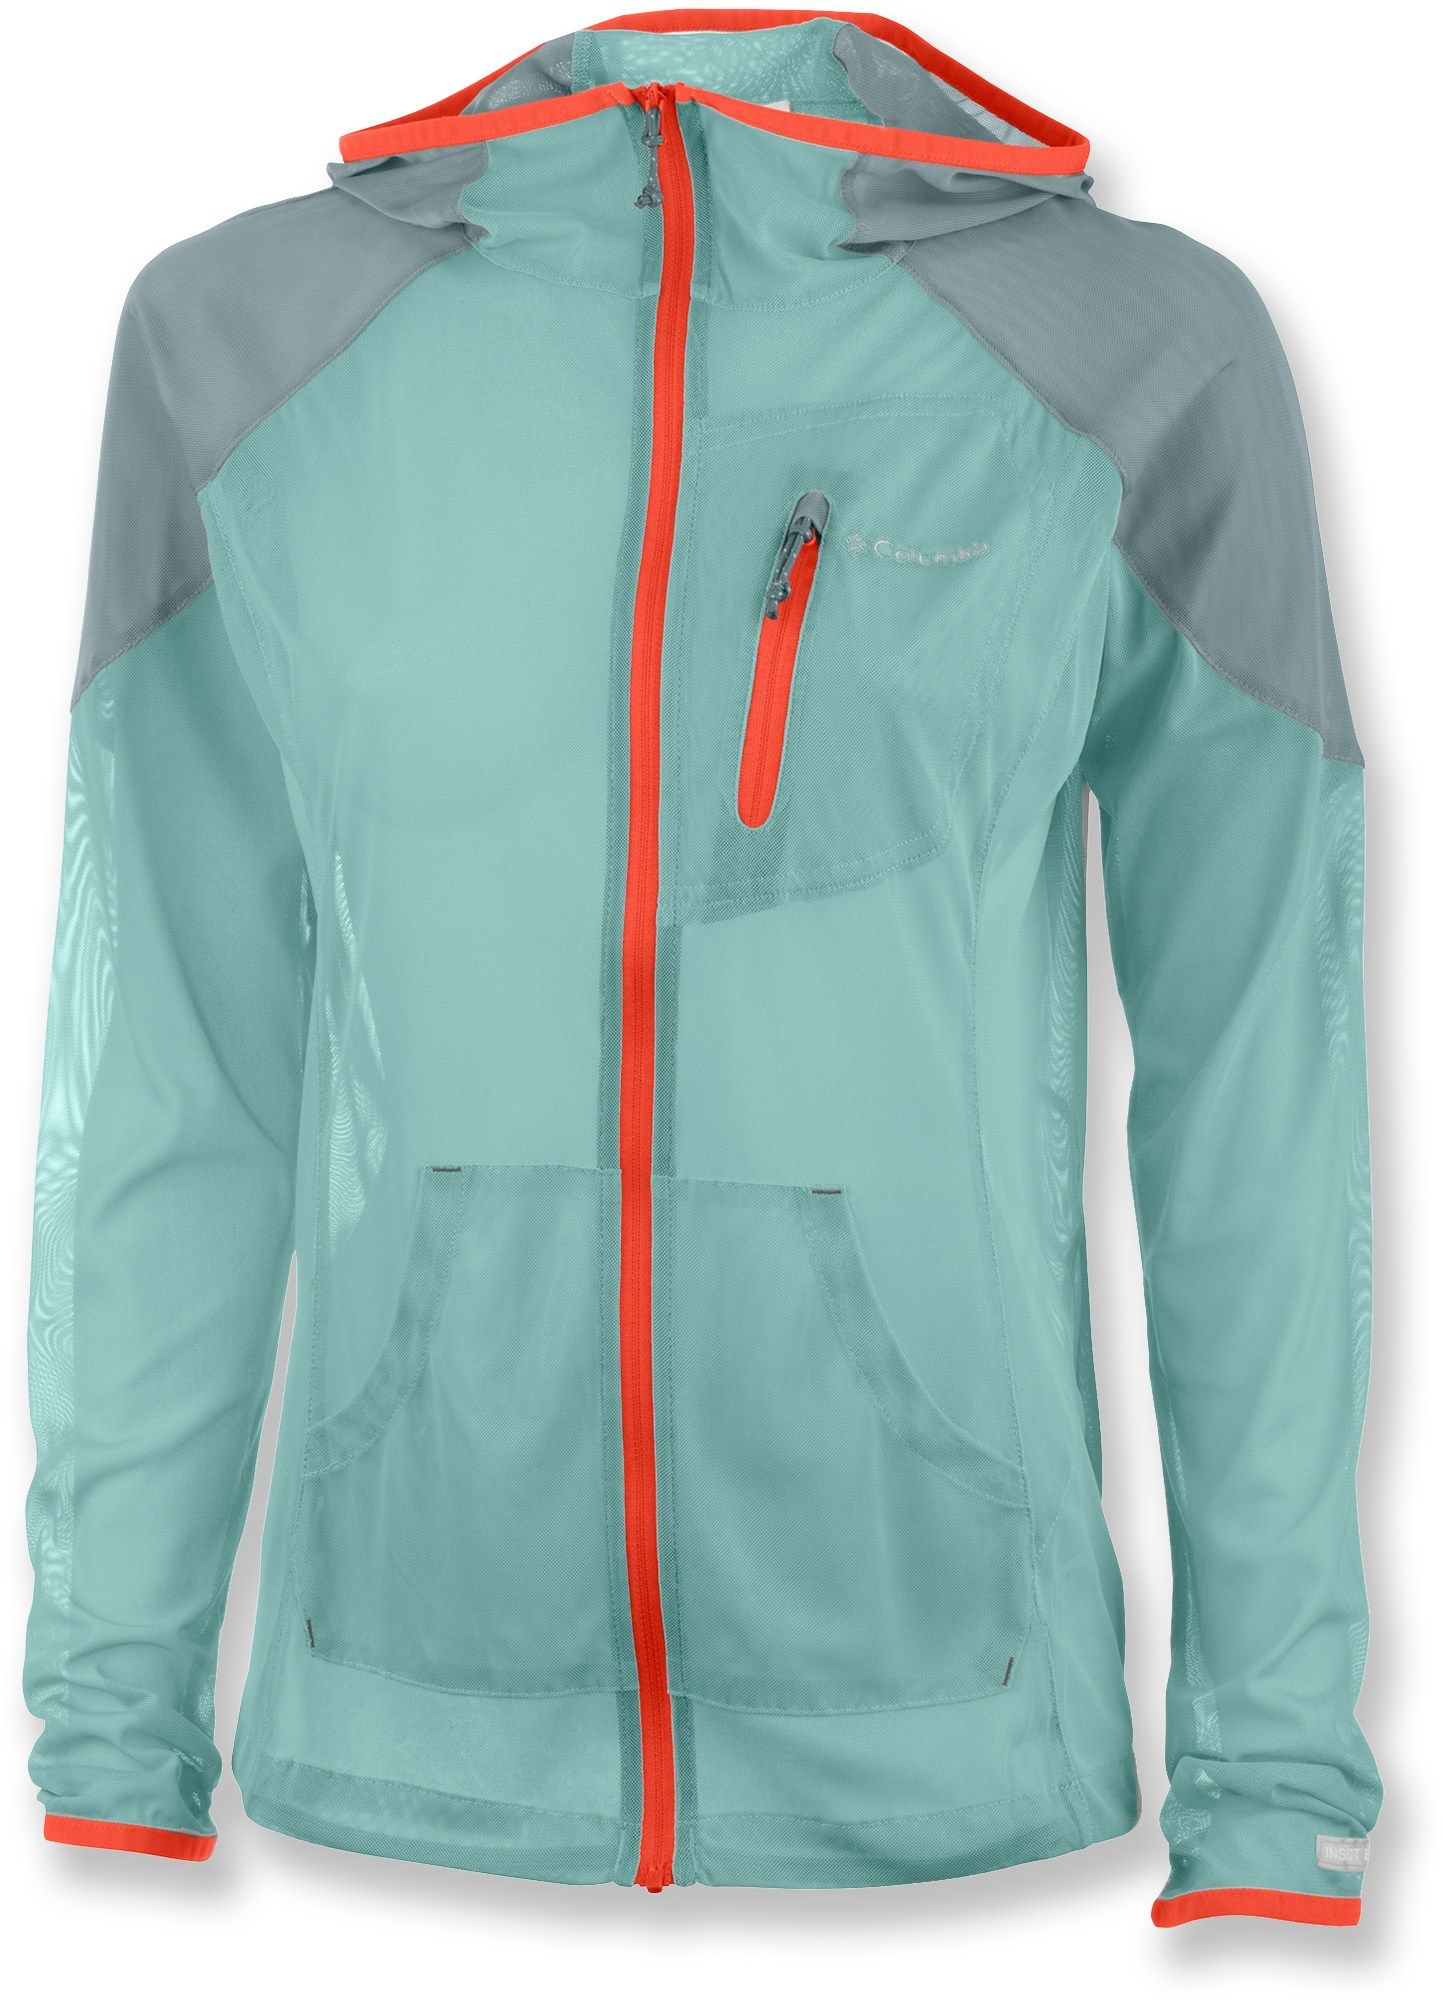 540e590148 DS NIKE 2012 OLYMPIC GOLD METAL STAND 3M SILVER WINDRUNNER JACKET WOMEN S M  AIR